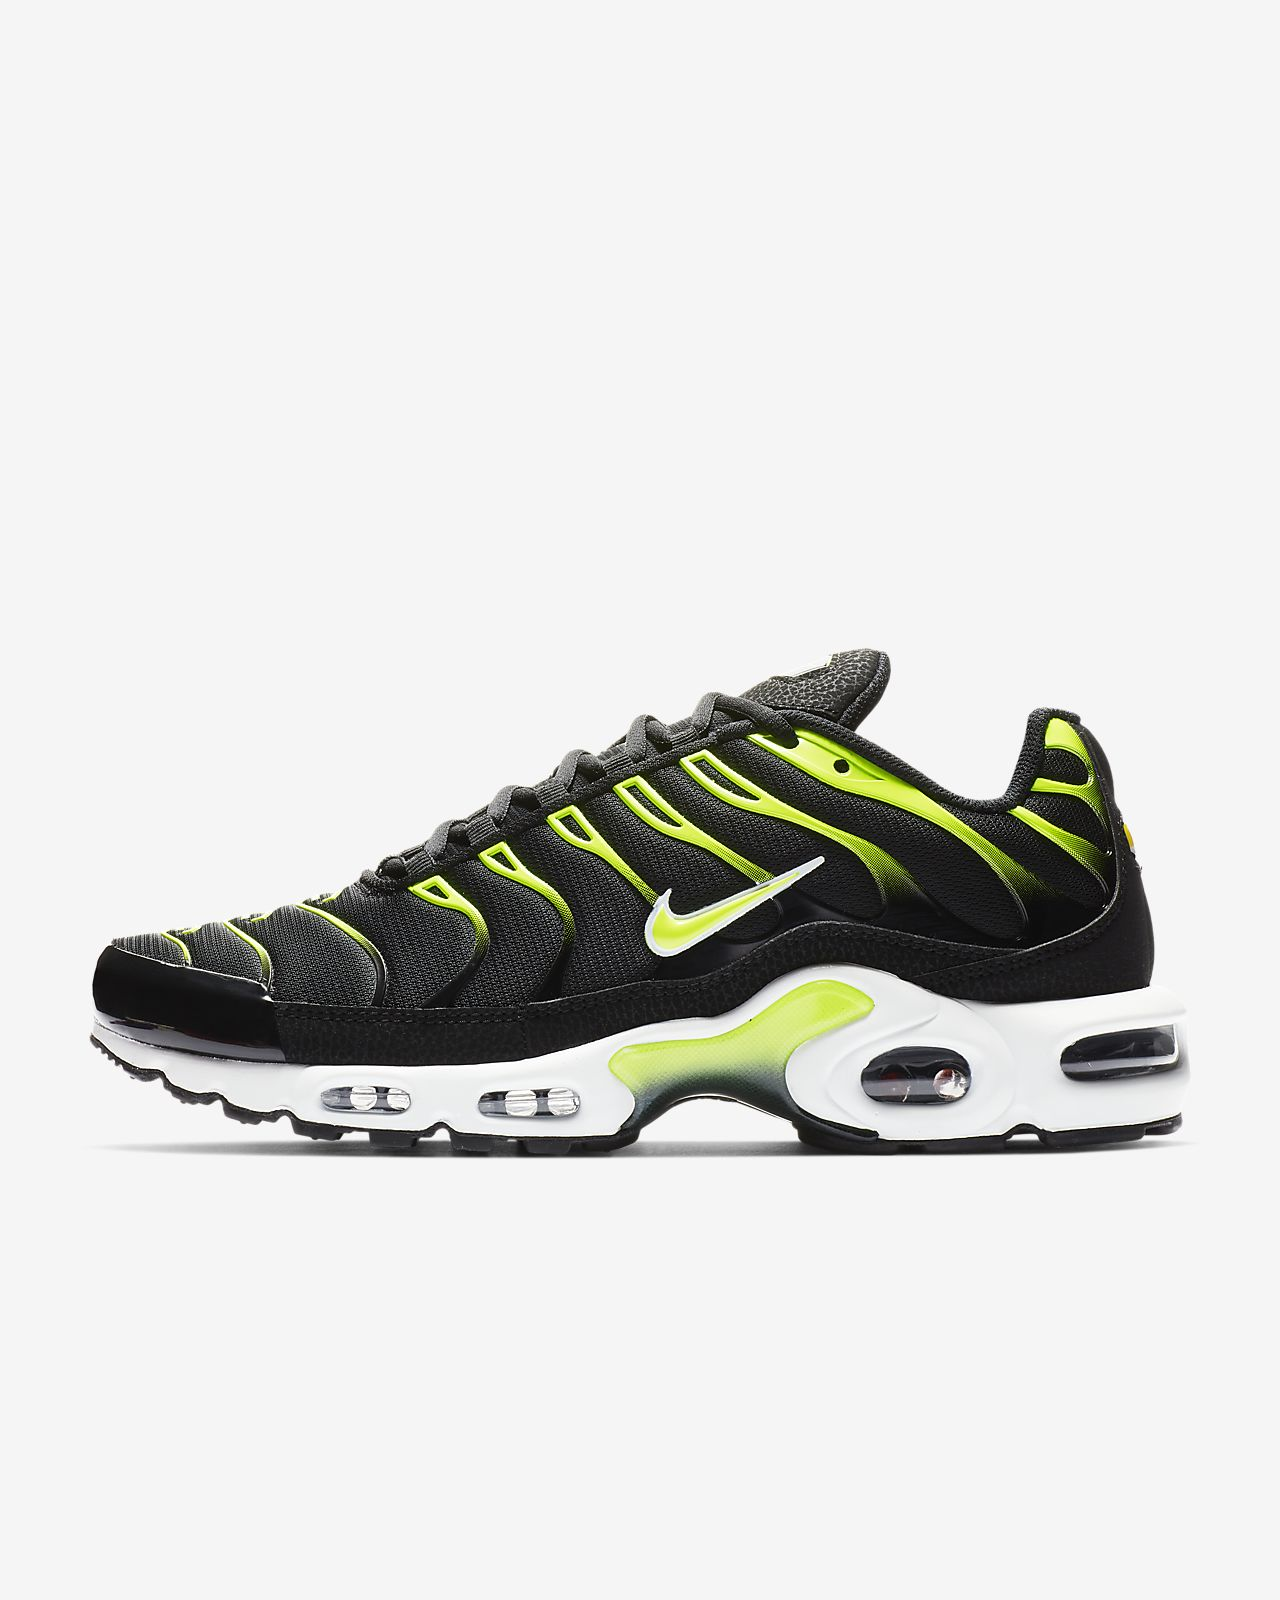 c5c821ded0b Low Resolution Nike Air Max Plus Men s Shoe Nike Air Max Plus Men s Shoe